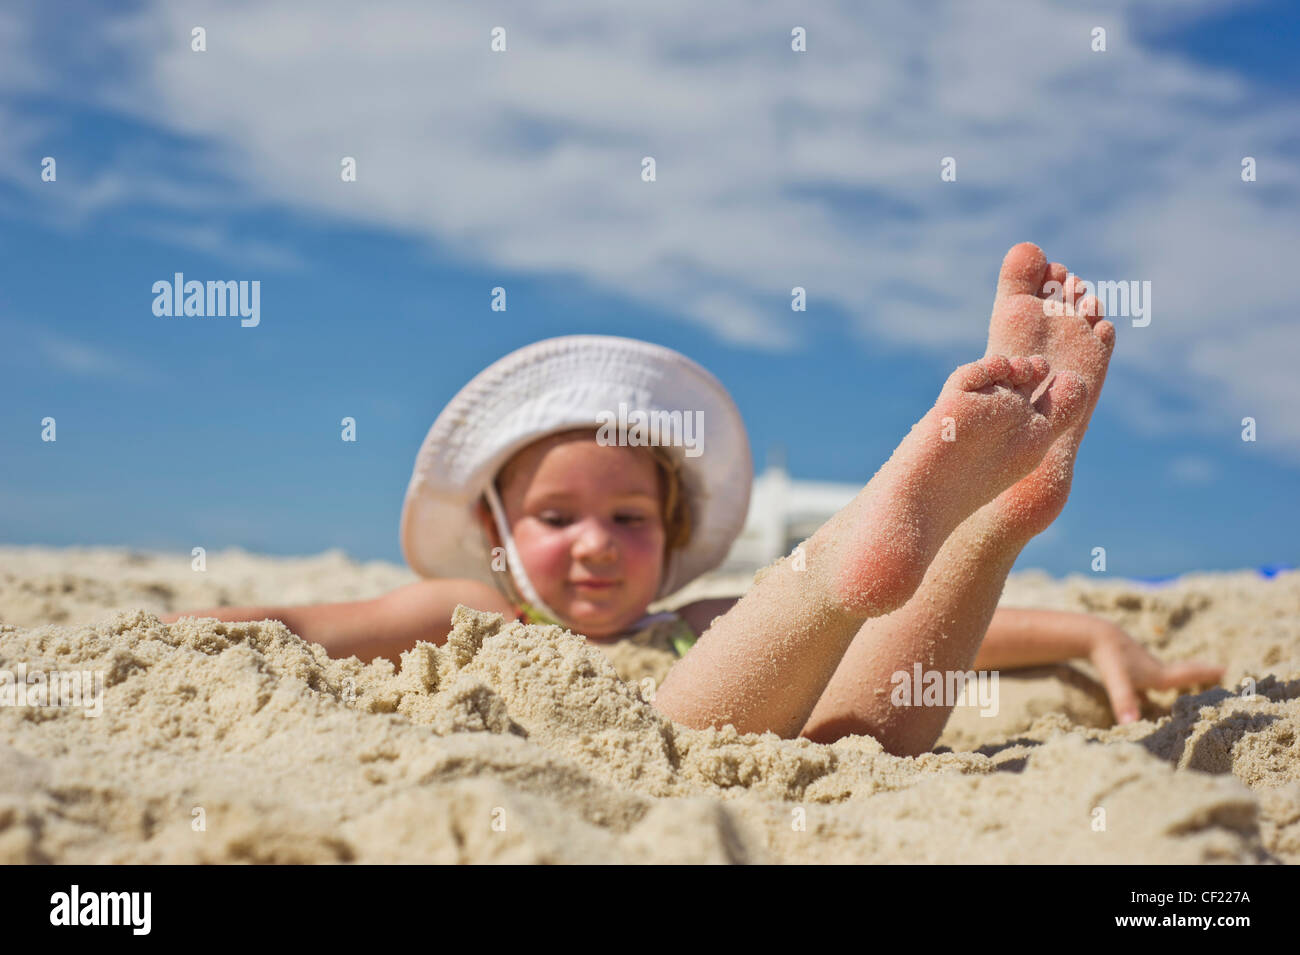 buy online ef4e1 8b075 A child throws sand in the air while playing on the beach. - Stock Image